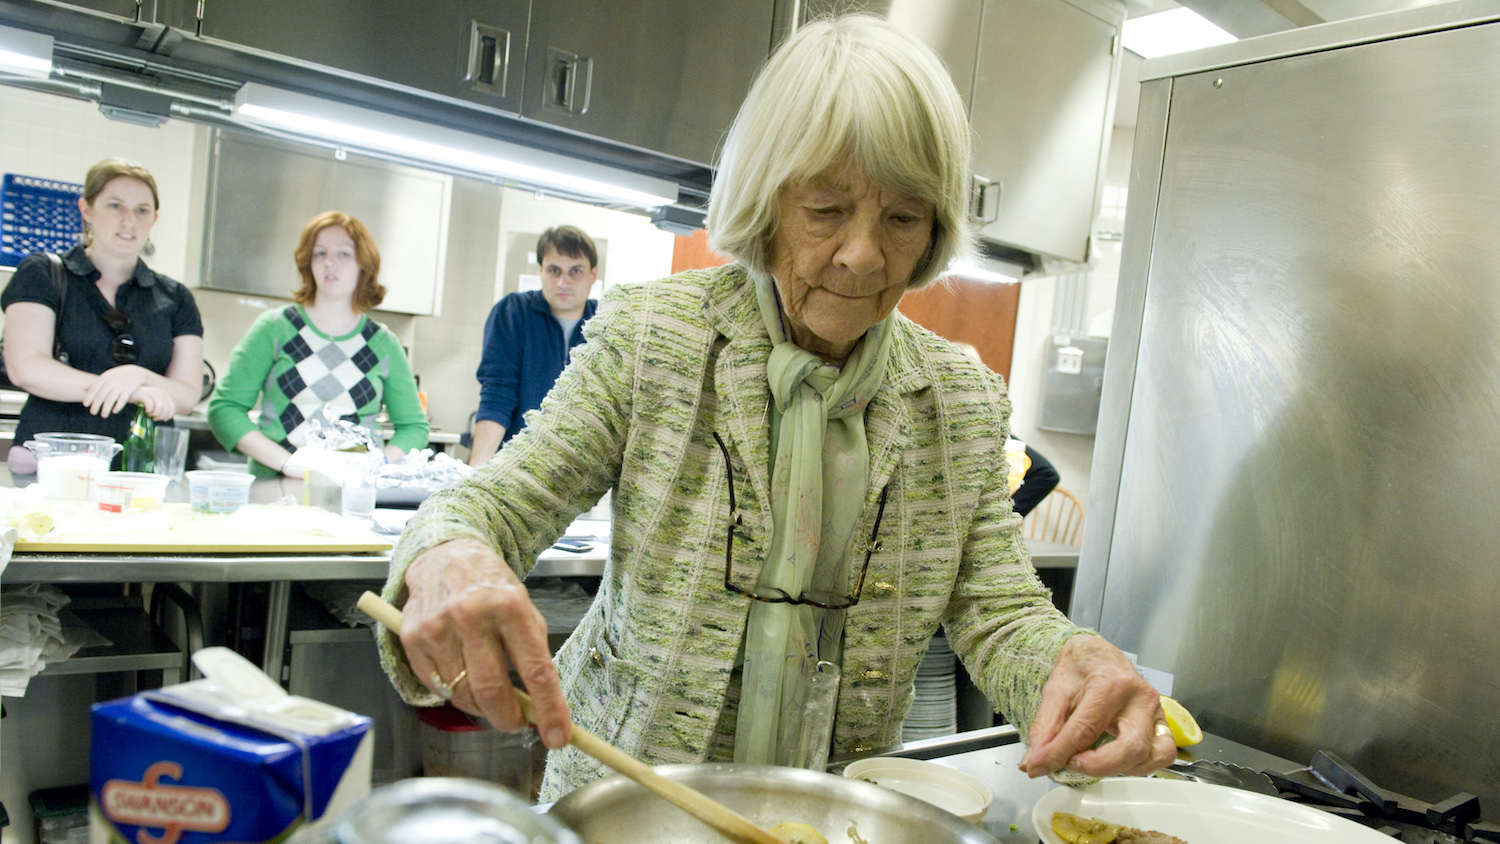 Judith Jones, editor of cookbook author Julia Child, passes away at 93